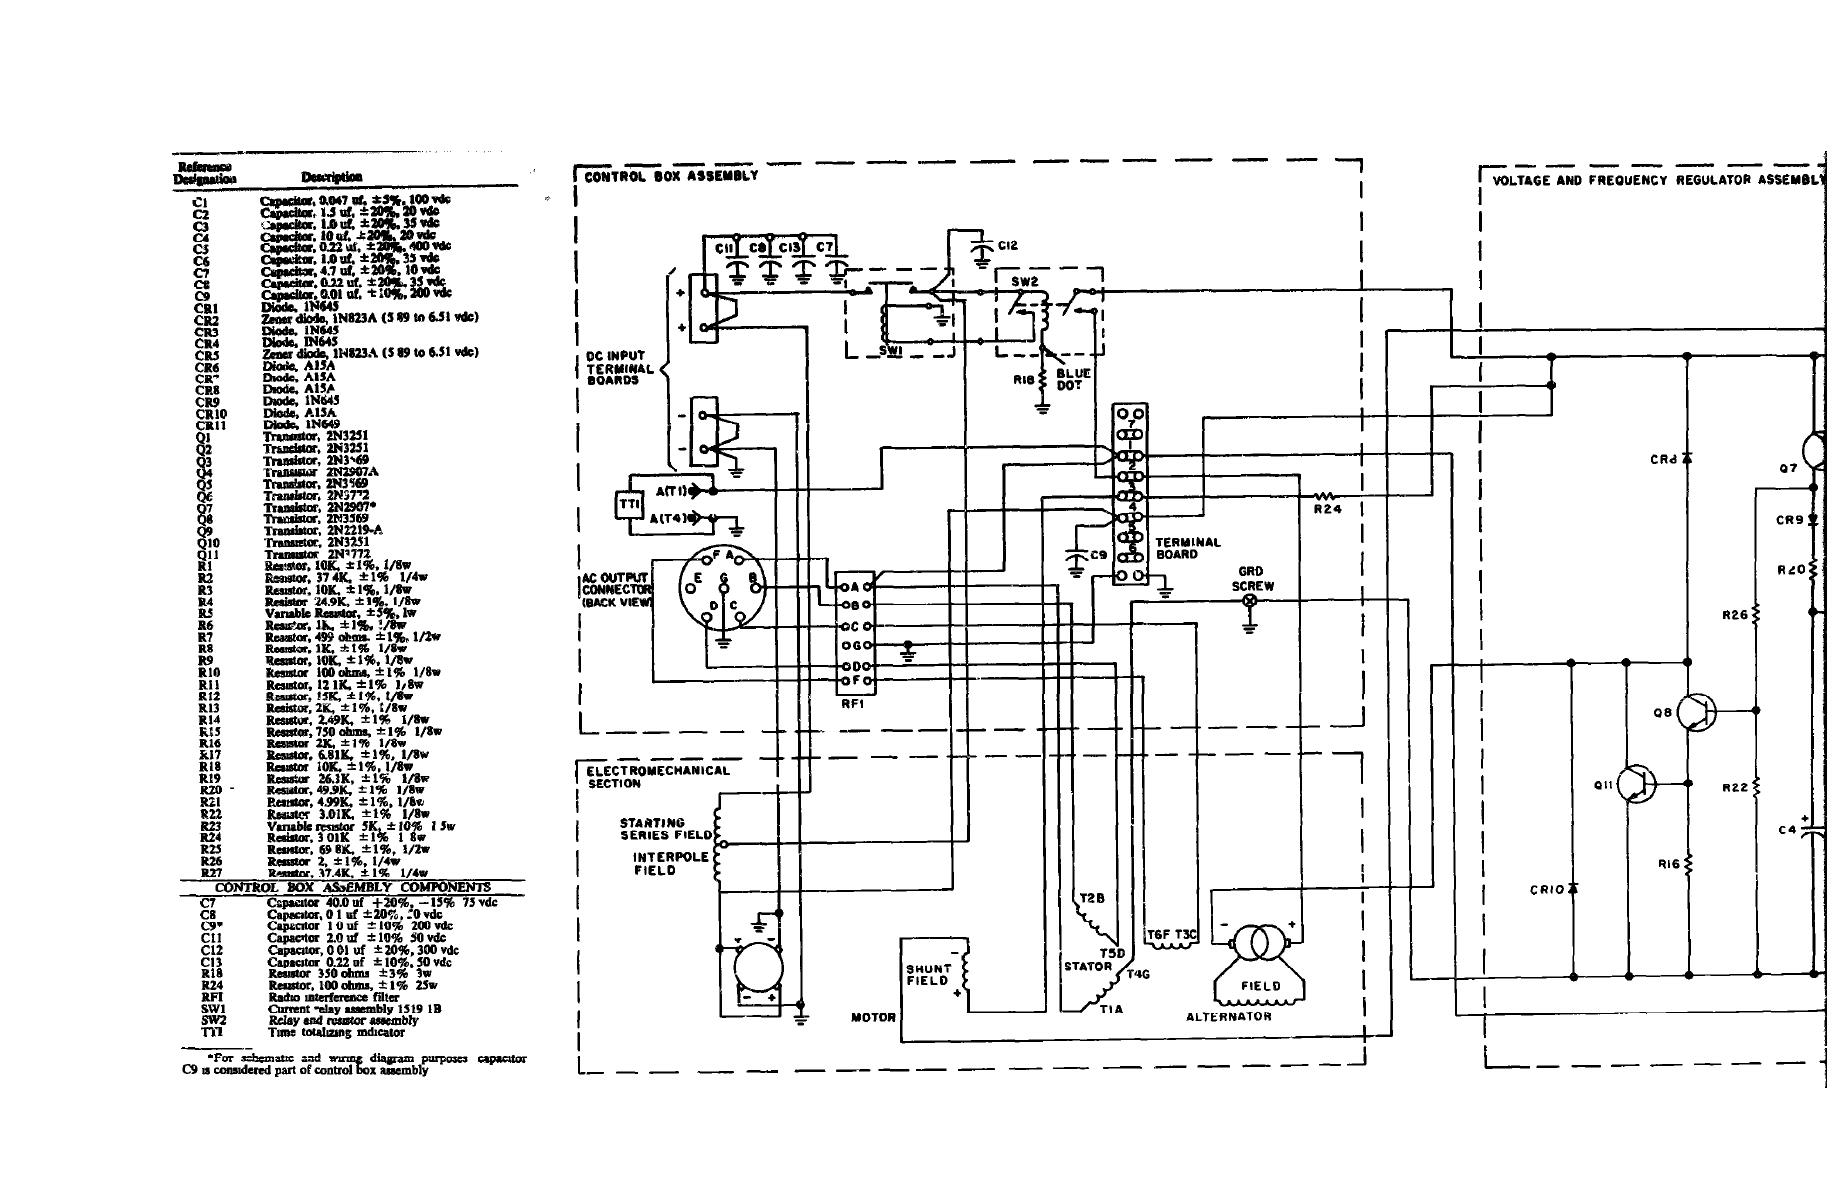 Generator Schematic Diagram Change Your Idea With Wiring Parallel For Figure Fo 2 1 Motor Pu 750a A Tm Rh Generators Tpub Com Diesel Tone